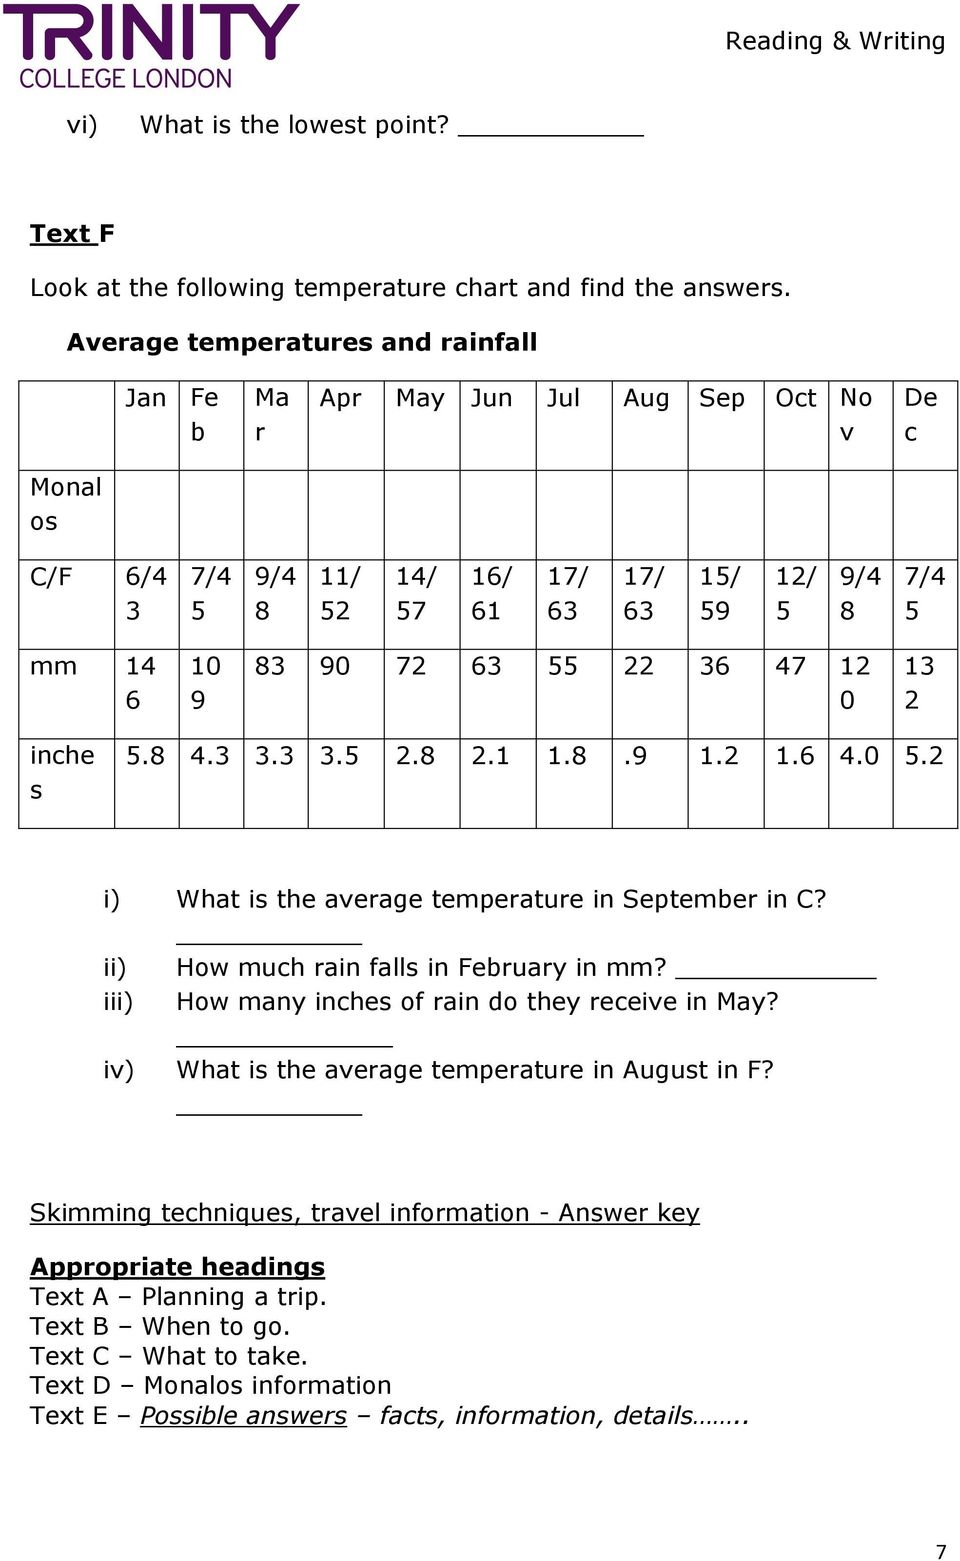 63 55 22 36 47 12 0 13 2 inche s 5.8 4.3 3.3 3.5 2.8 2.1 1.8.9 1.2 1.6 4.0 5.2 i) What is the average temperature in September in C? ii) How much rain falls in February in mm?